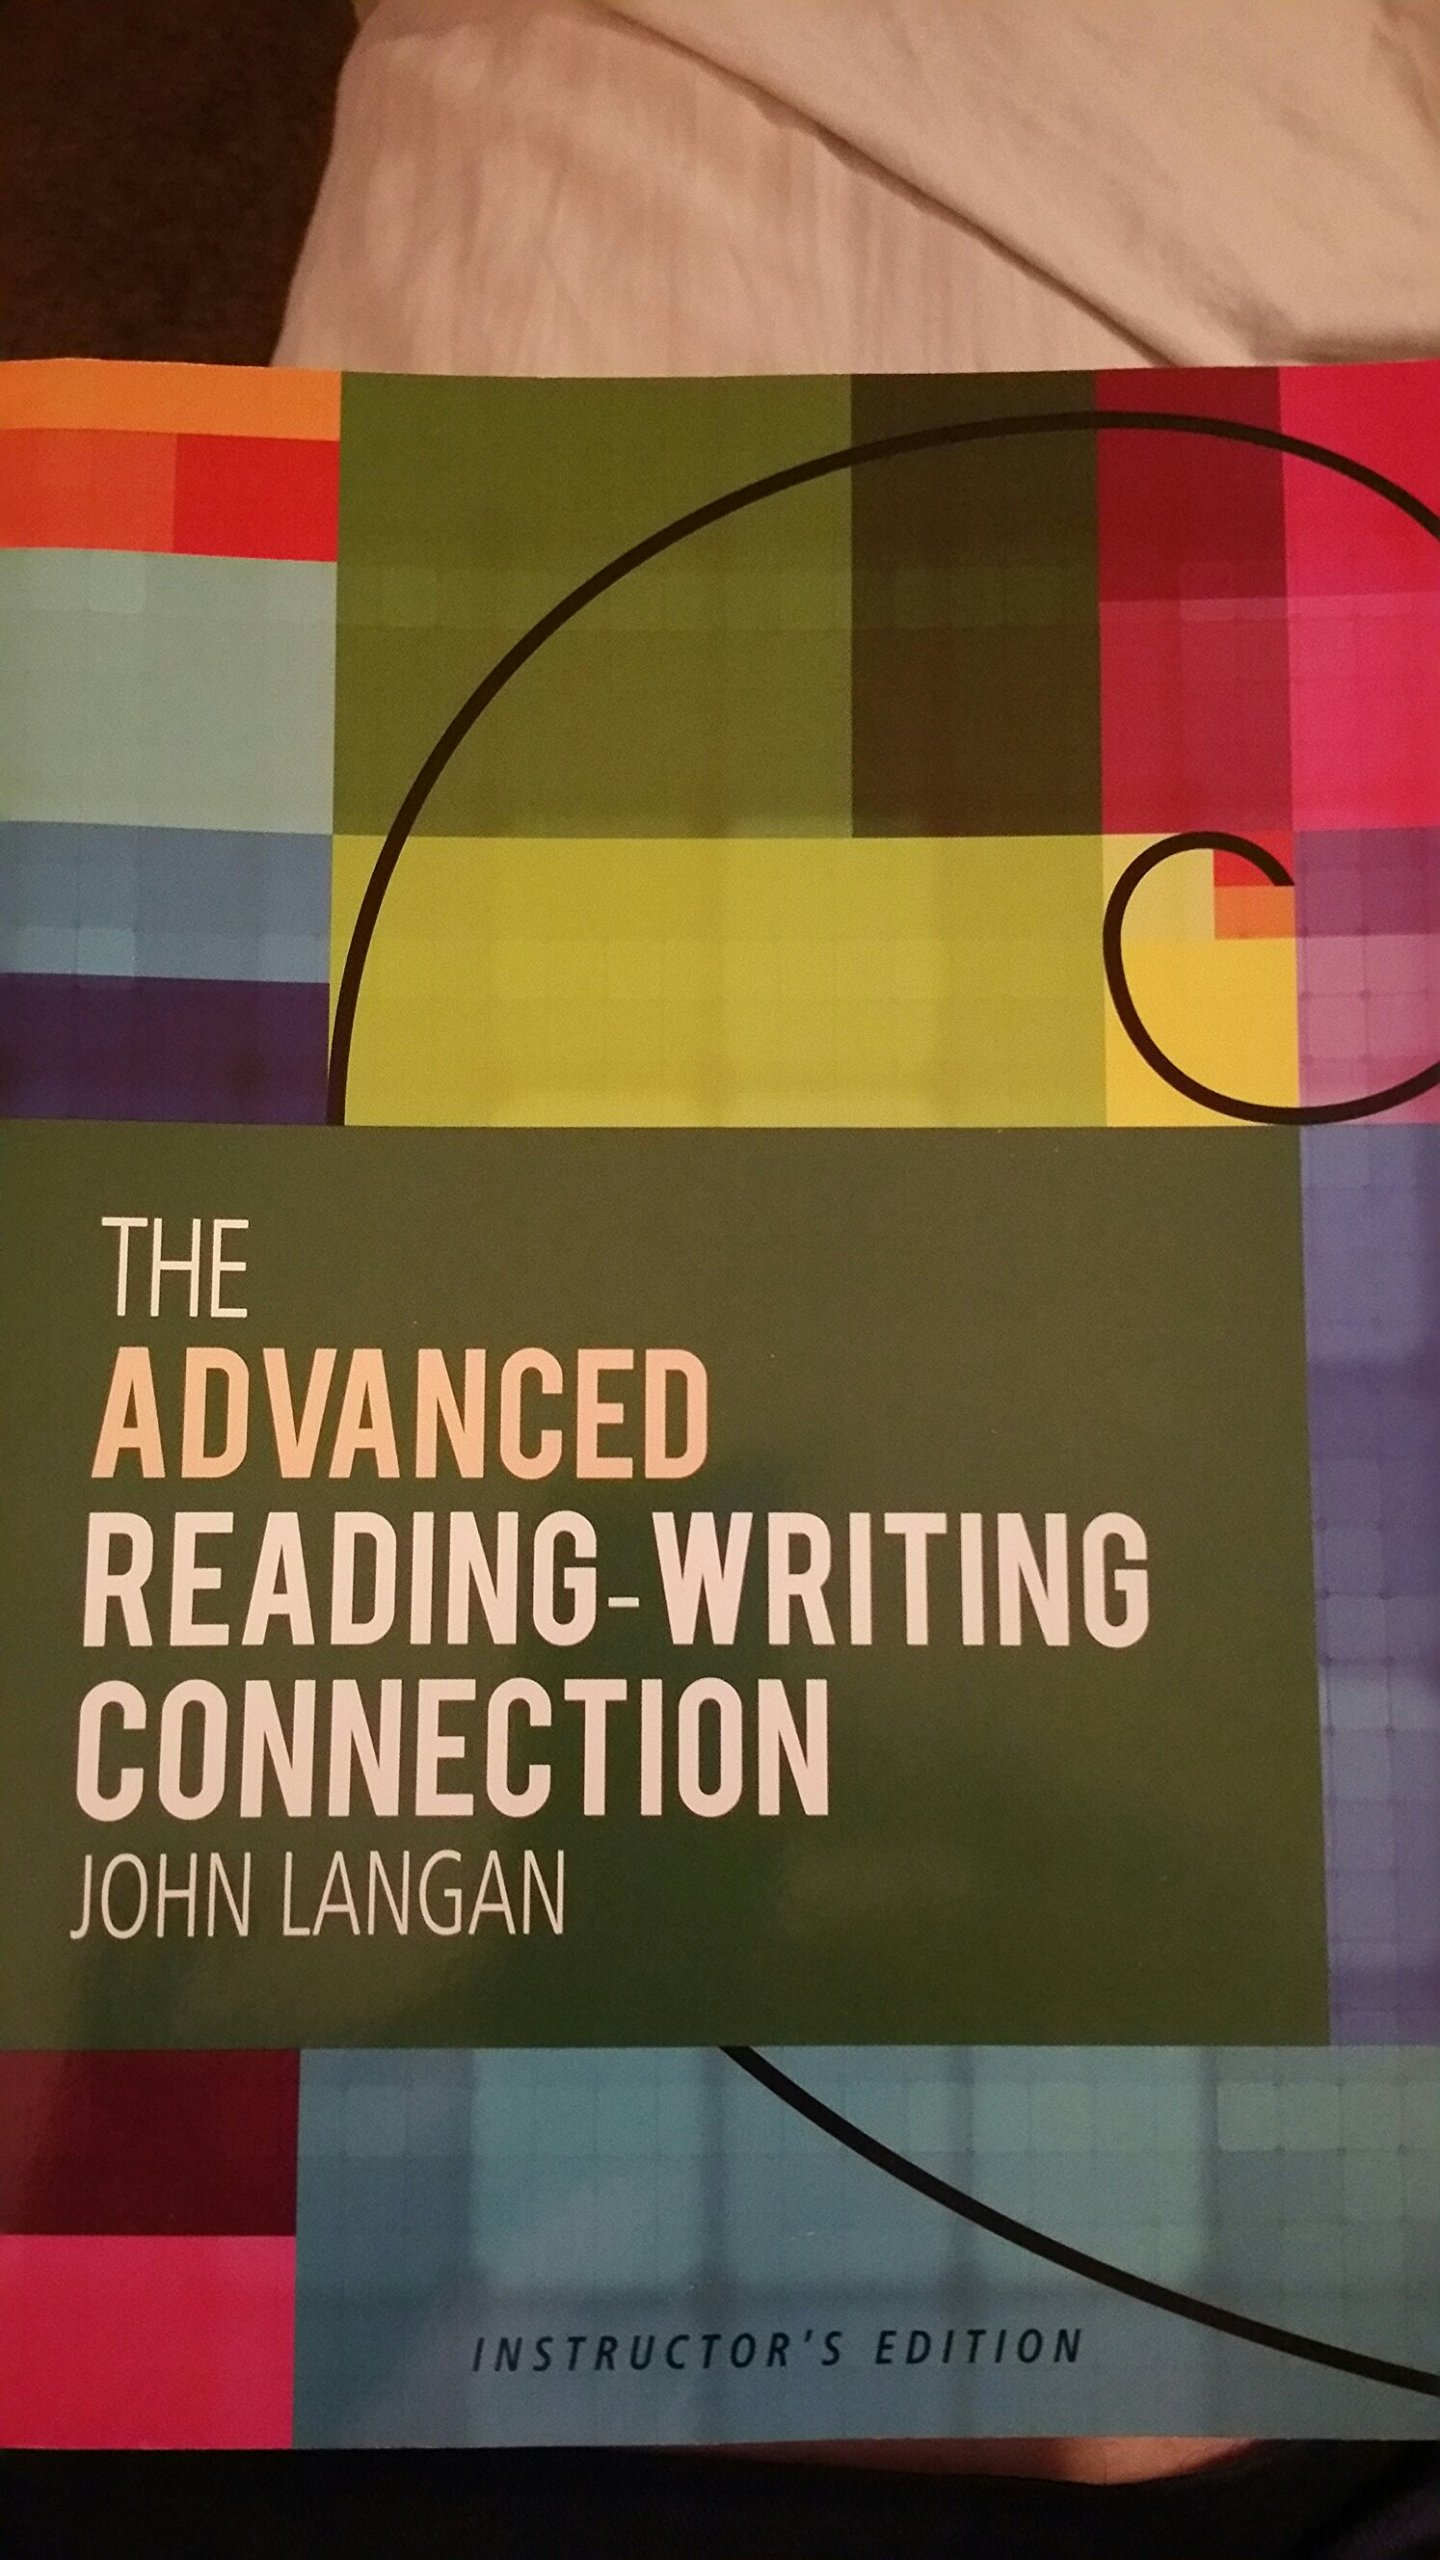 The Advanced Reading-writing Connection: John Langan: 9781591944263:  Amazon.com: Books